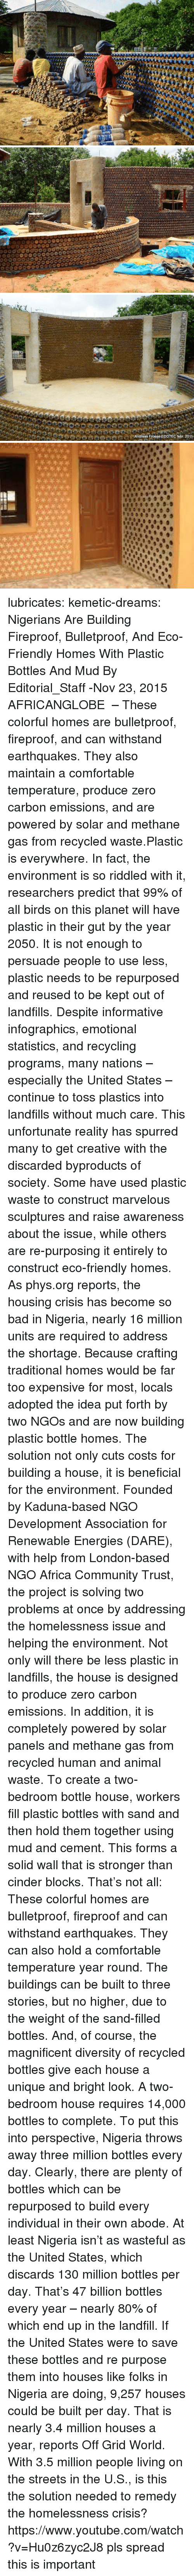 Marvelous: lubricates:  kemetic-dreams:   Nigerians Are Building Fireproof, Bulletproof, And Eco-Friendly Homes With Plastic Bottles And Mud By Editorial_Staff -Nov 23, 2015   AFRICANGLOBE  – These colorful homes are bulletproof, fireproof, and can withstand earthquakes. They also maintain a comfortable temperature, produce zero carbon emissions, and are powered by solar and methane gas from recycled waste.Plastic is everywhere. In fact, the environment is so riddled with it, researchers predict that 99% of all birds on this planet will have plastic in their gut by the year 2050. It is not enough to persuade people to use less, plastic needs to be repurposed and reused to be kept out of landfills. Despite informative infographics, emotional statistics, and recycling programs, many nations – especially the United States – continue to toss plastics into landfills without much care. This unfortunate reality has spurred many to get creative with the discarded byproducts of society. Some have used plastic waste to construct marvelous sculptures and raise awareness about the issue, while others are re-purposing it entirely to construct eco-friendly homes. As phys.org reports, the housing crisis has become so bad in Nigeria, nearly 16 million units are required to address the shortage. Because crafting traditional homes would be far too expensive for most, locals adopted the idea put forth by two NGOs and are now building plastic bottle homes. The solution not only cuts costs for building a house, it is beneficial for the environment. Founded by Kaduna-based NGO Development Association for Renewable Energies (DARE), with help from London-based NGO Africa Community Trust, the project is solving two problems at once by addressing the homelessness issue and helping the environment. Not only will there be less plastic in landfills, the house is designed to produce zero carbon emissions. In addition, it is completely powered by solar panels and methane gas from recycled human and animal waste. To create a two-bedroom bottle house, workers fill plastic bottles with sand and then hold them together using mud and cement. This forms a solid wall that is stronger than cinder blocks. That's not all: These colorful homes are bulletproof, fireproof and can withstand earthquakes. They can also hold a comfortable temperature year round. The buildings can be built to three stories, but no higher, due to the weight of the sand-filled bottles. And, of course, the magnificent diversity of recycled bottles give each house a unique and bright look. A two-bedroom house requires 14,000 bottles to complete. To put this into perspective, Nigeria throws away three million bottles every day. Clearly, there are plenty of bottles which can be repurposed to build every individual in their own abode. At least Nigeria isn't as wasteful as the United States, which discards 130 million bottles per day. That's 47 billion bottles every year – nearly 80% of which end up in the landfill.  If the United States were to save these bottles and re purpose them into houses like folks in Nigeria are doing, 9,257 houses could be built per day. That is nearly 3.4 million houses a year, reports Off Grid World. With 3.5 million people living on the streets in the U.S., is this the solution needed to remedy the homelessness crisis? https://www.youtube.com/watch?v=Hu0z6zyc2J8  pls spread this is important